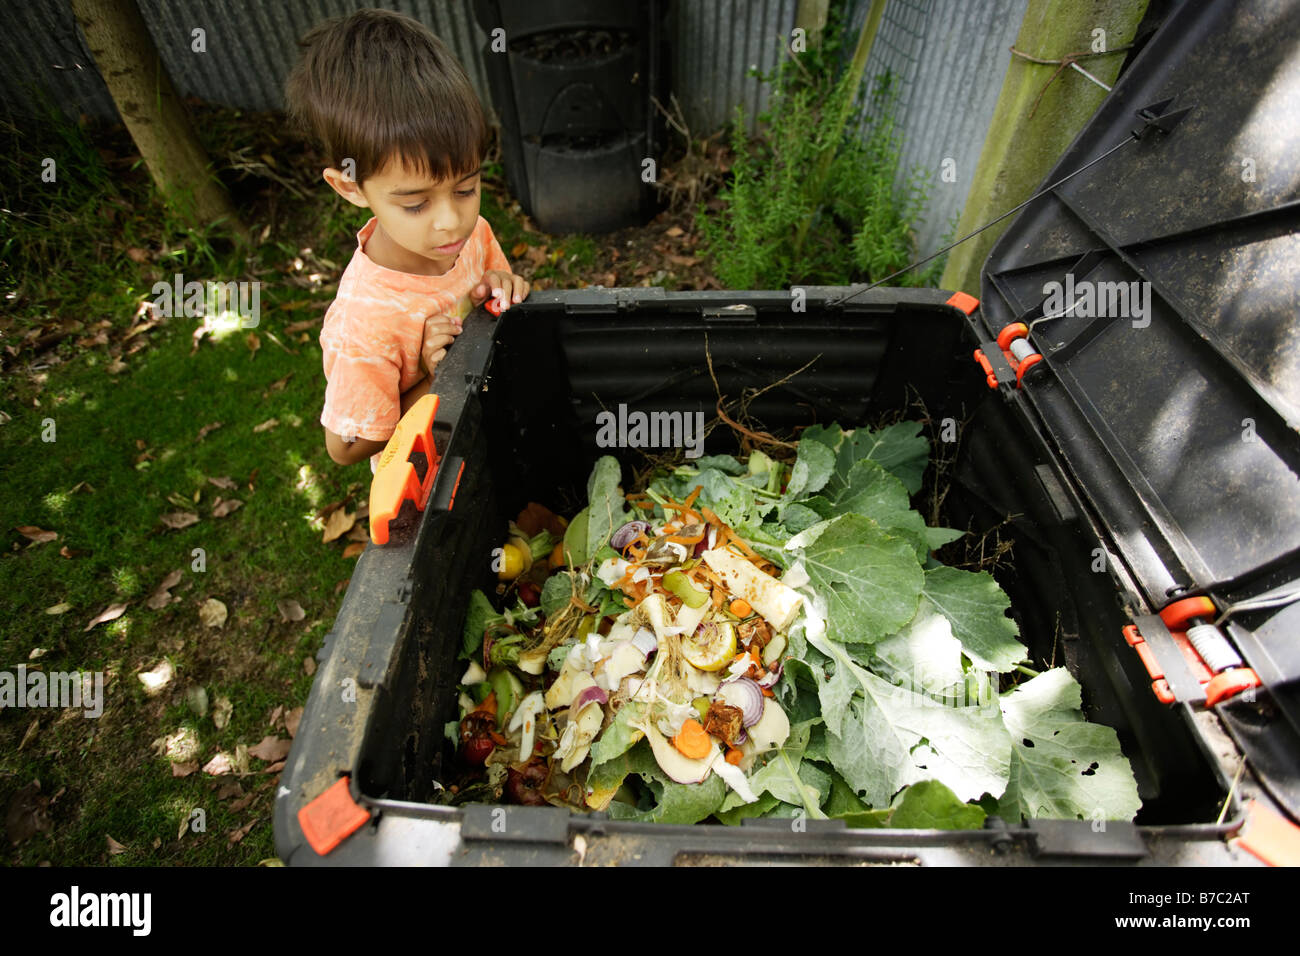 Six year old boy looks into compost bin in garden - Stock Image